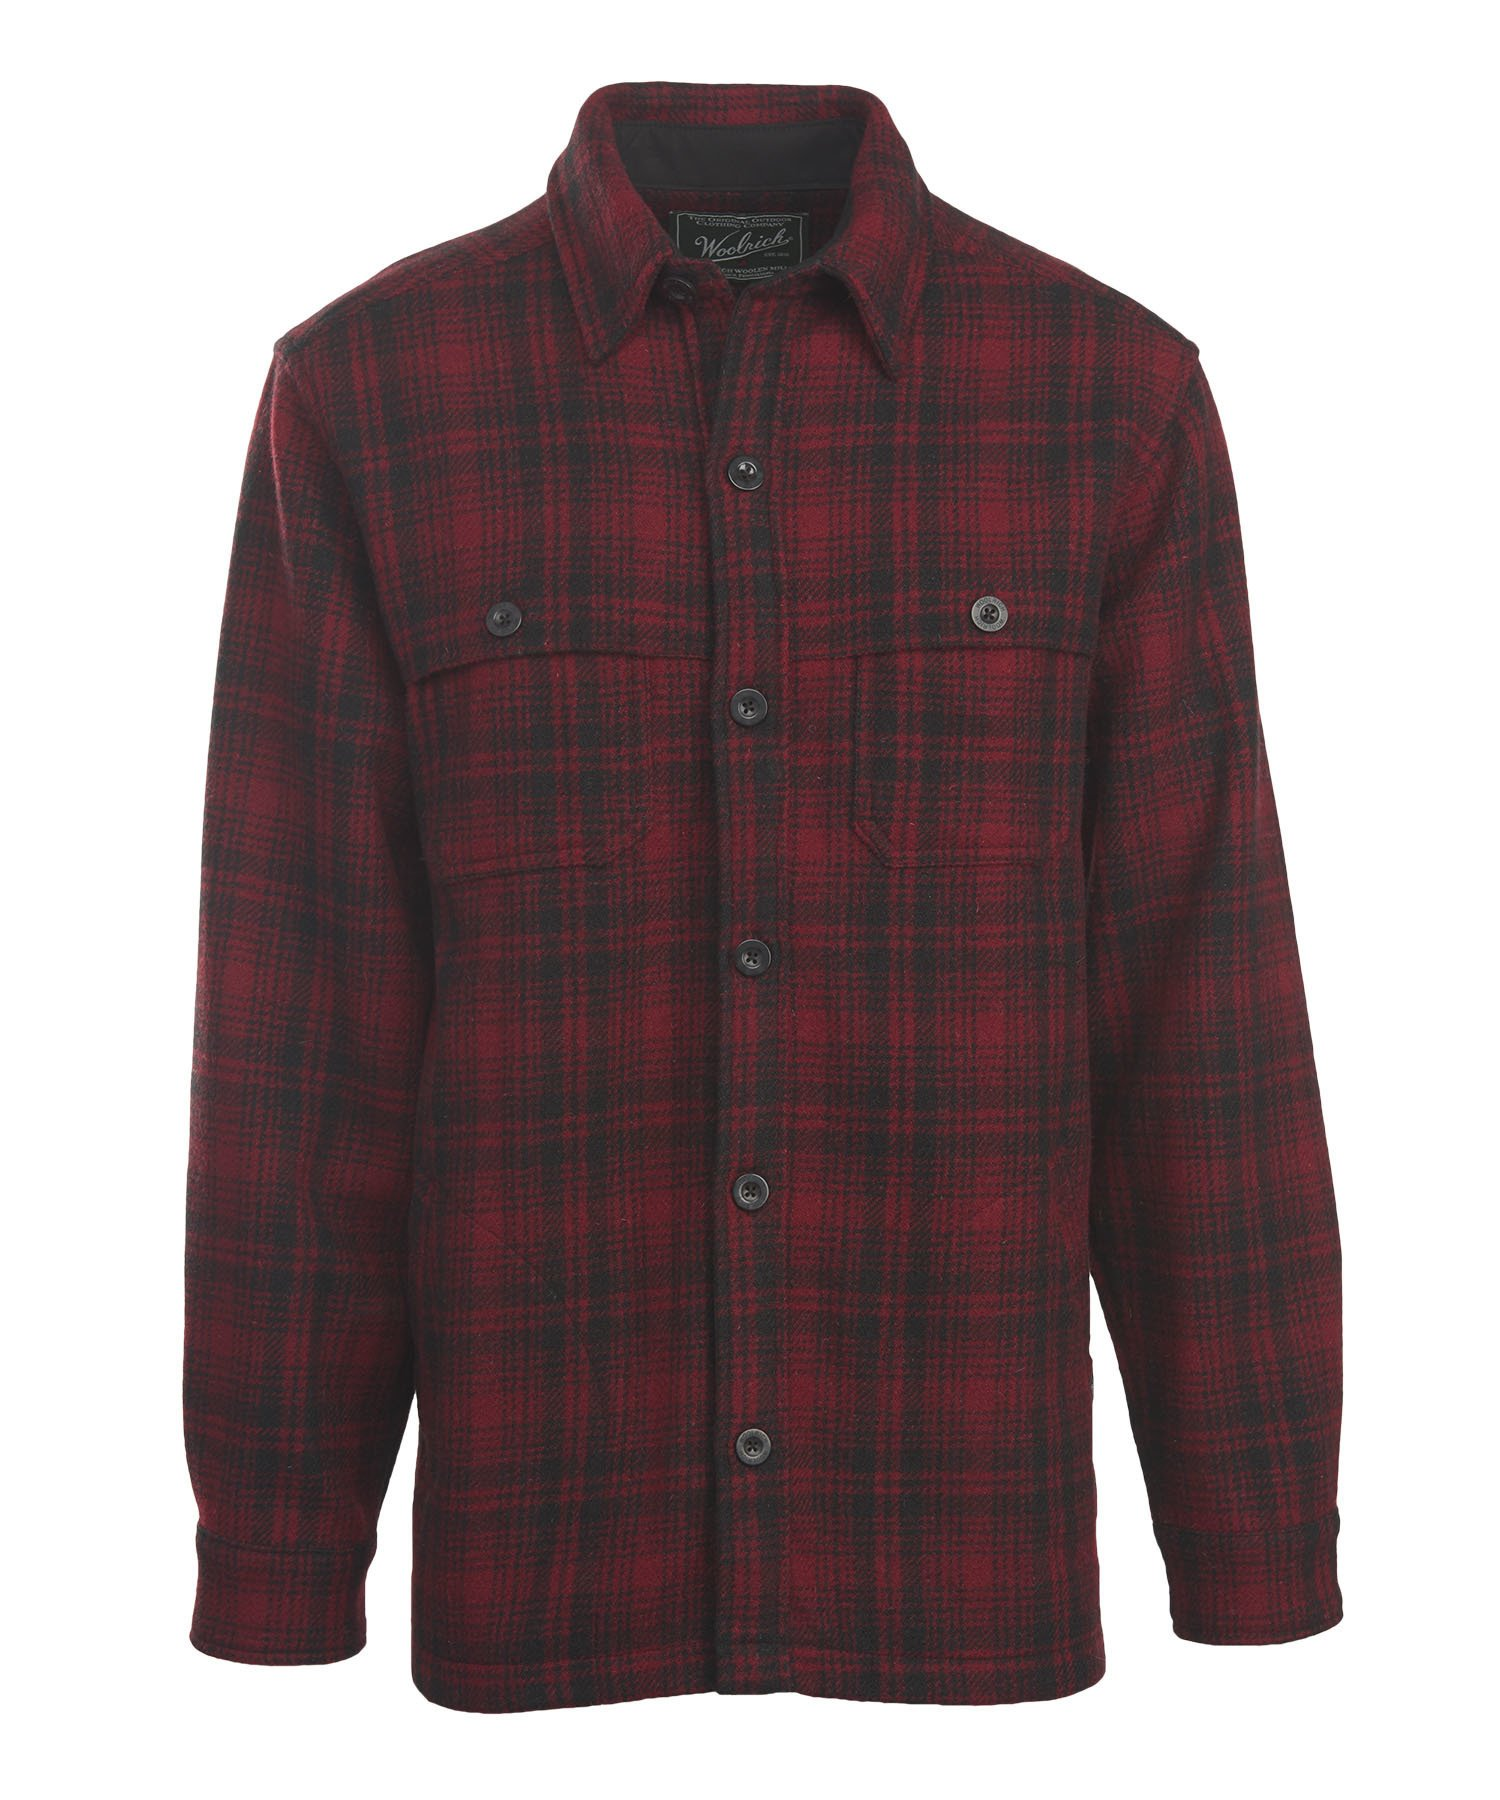 Woolrich Men's Wool Stag Shirt Jacket, Red Hunt, Large